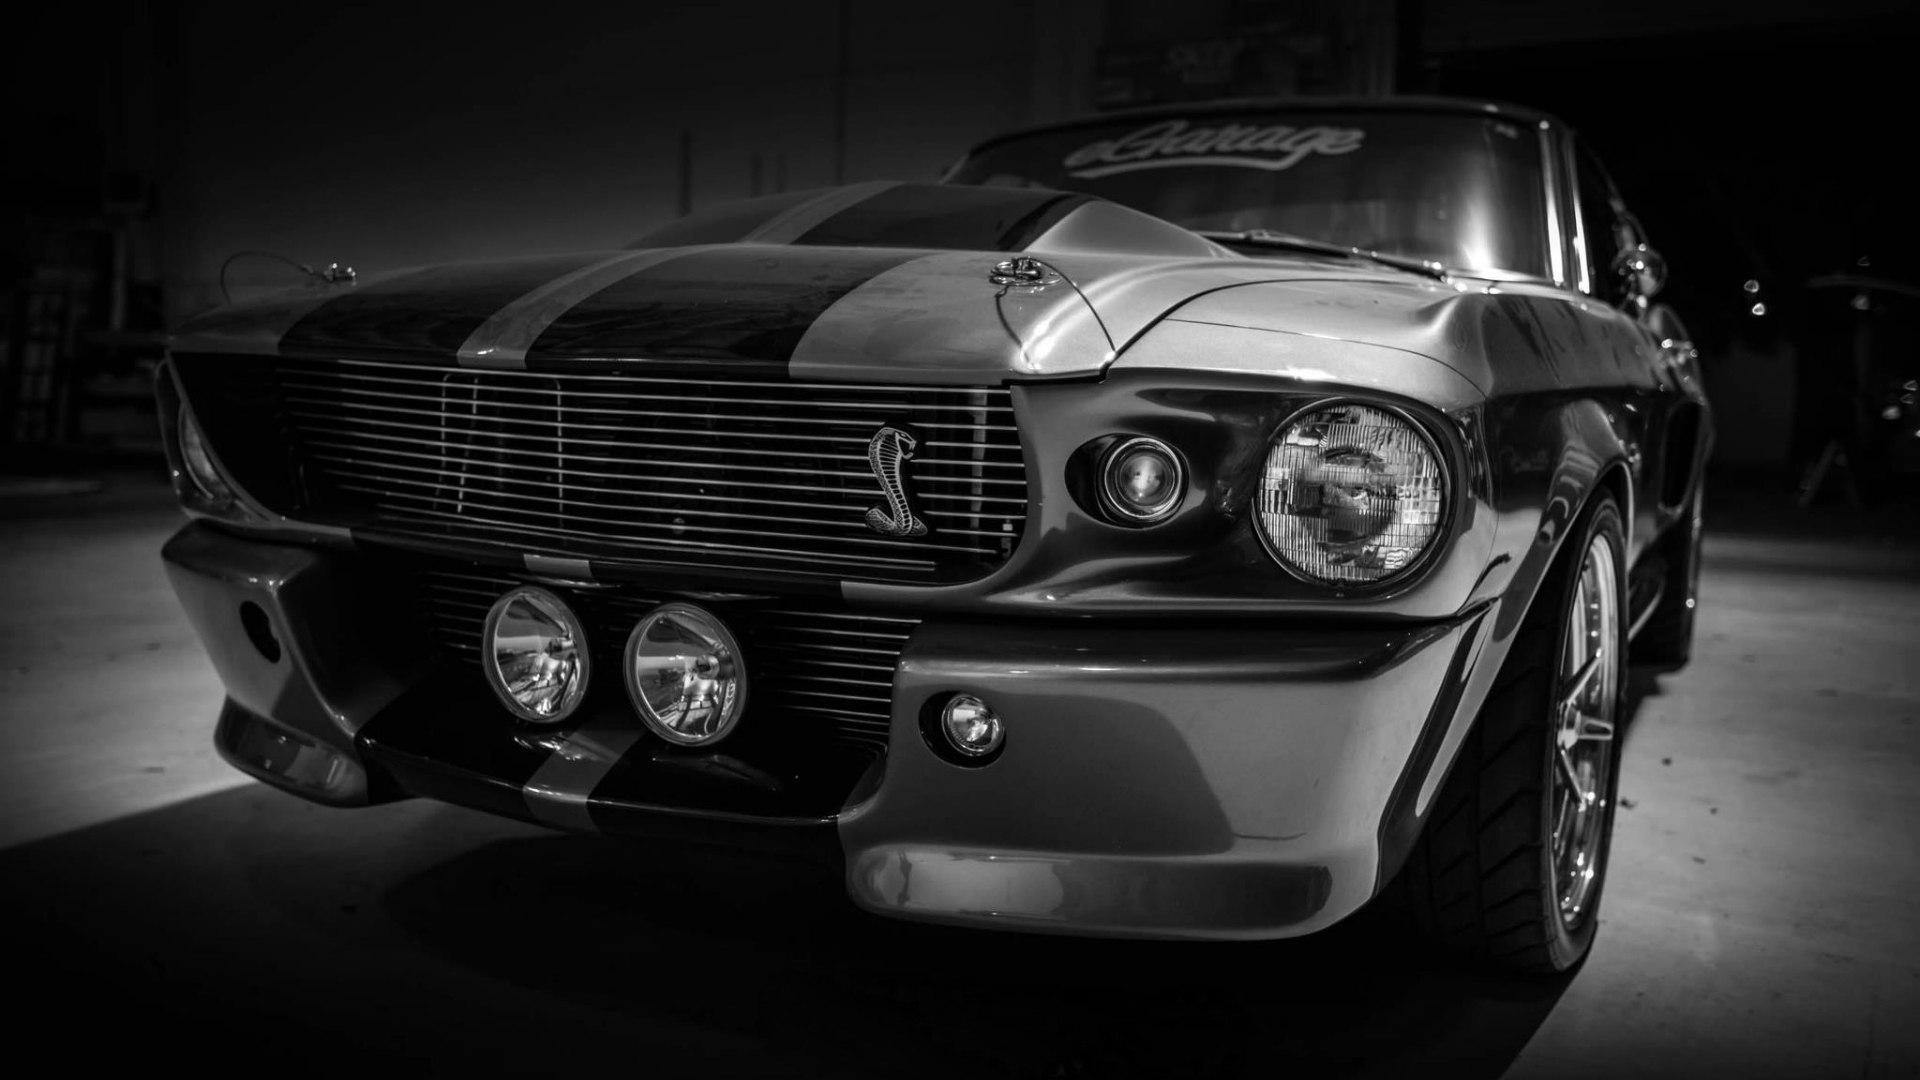 Wallpaper Ford Mustang Shelby Gt500 Eleanor Desktop Picture Hd Photo